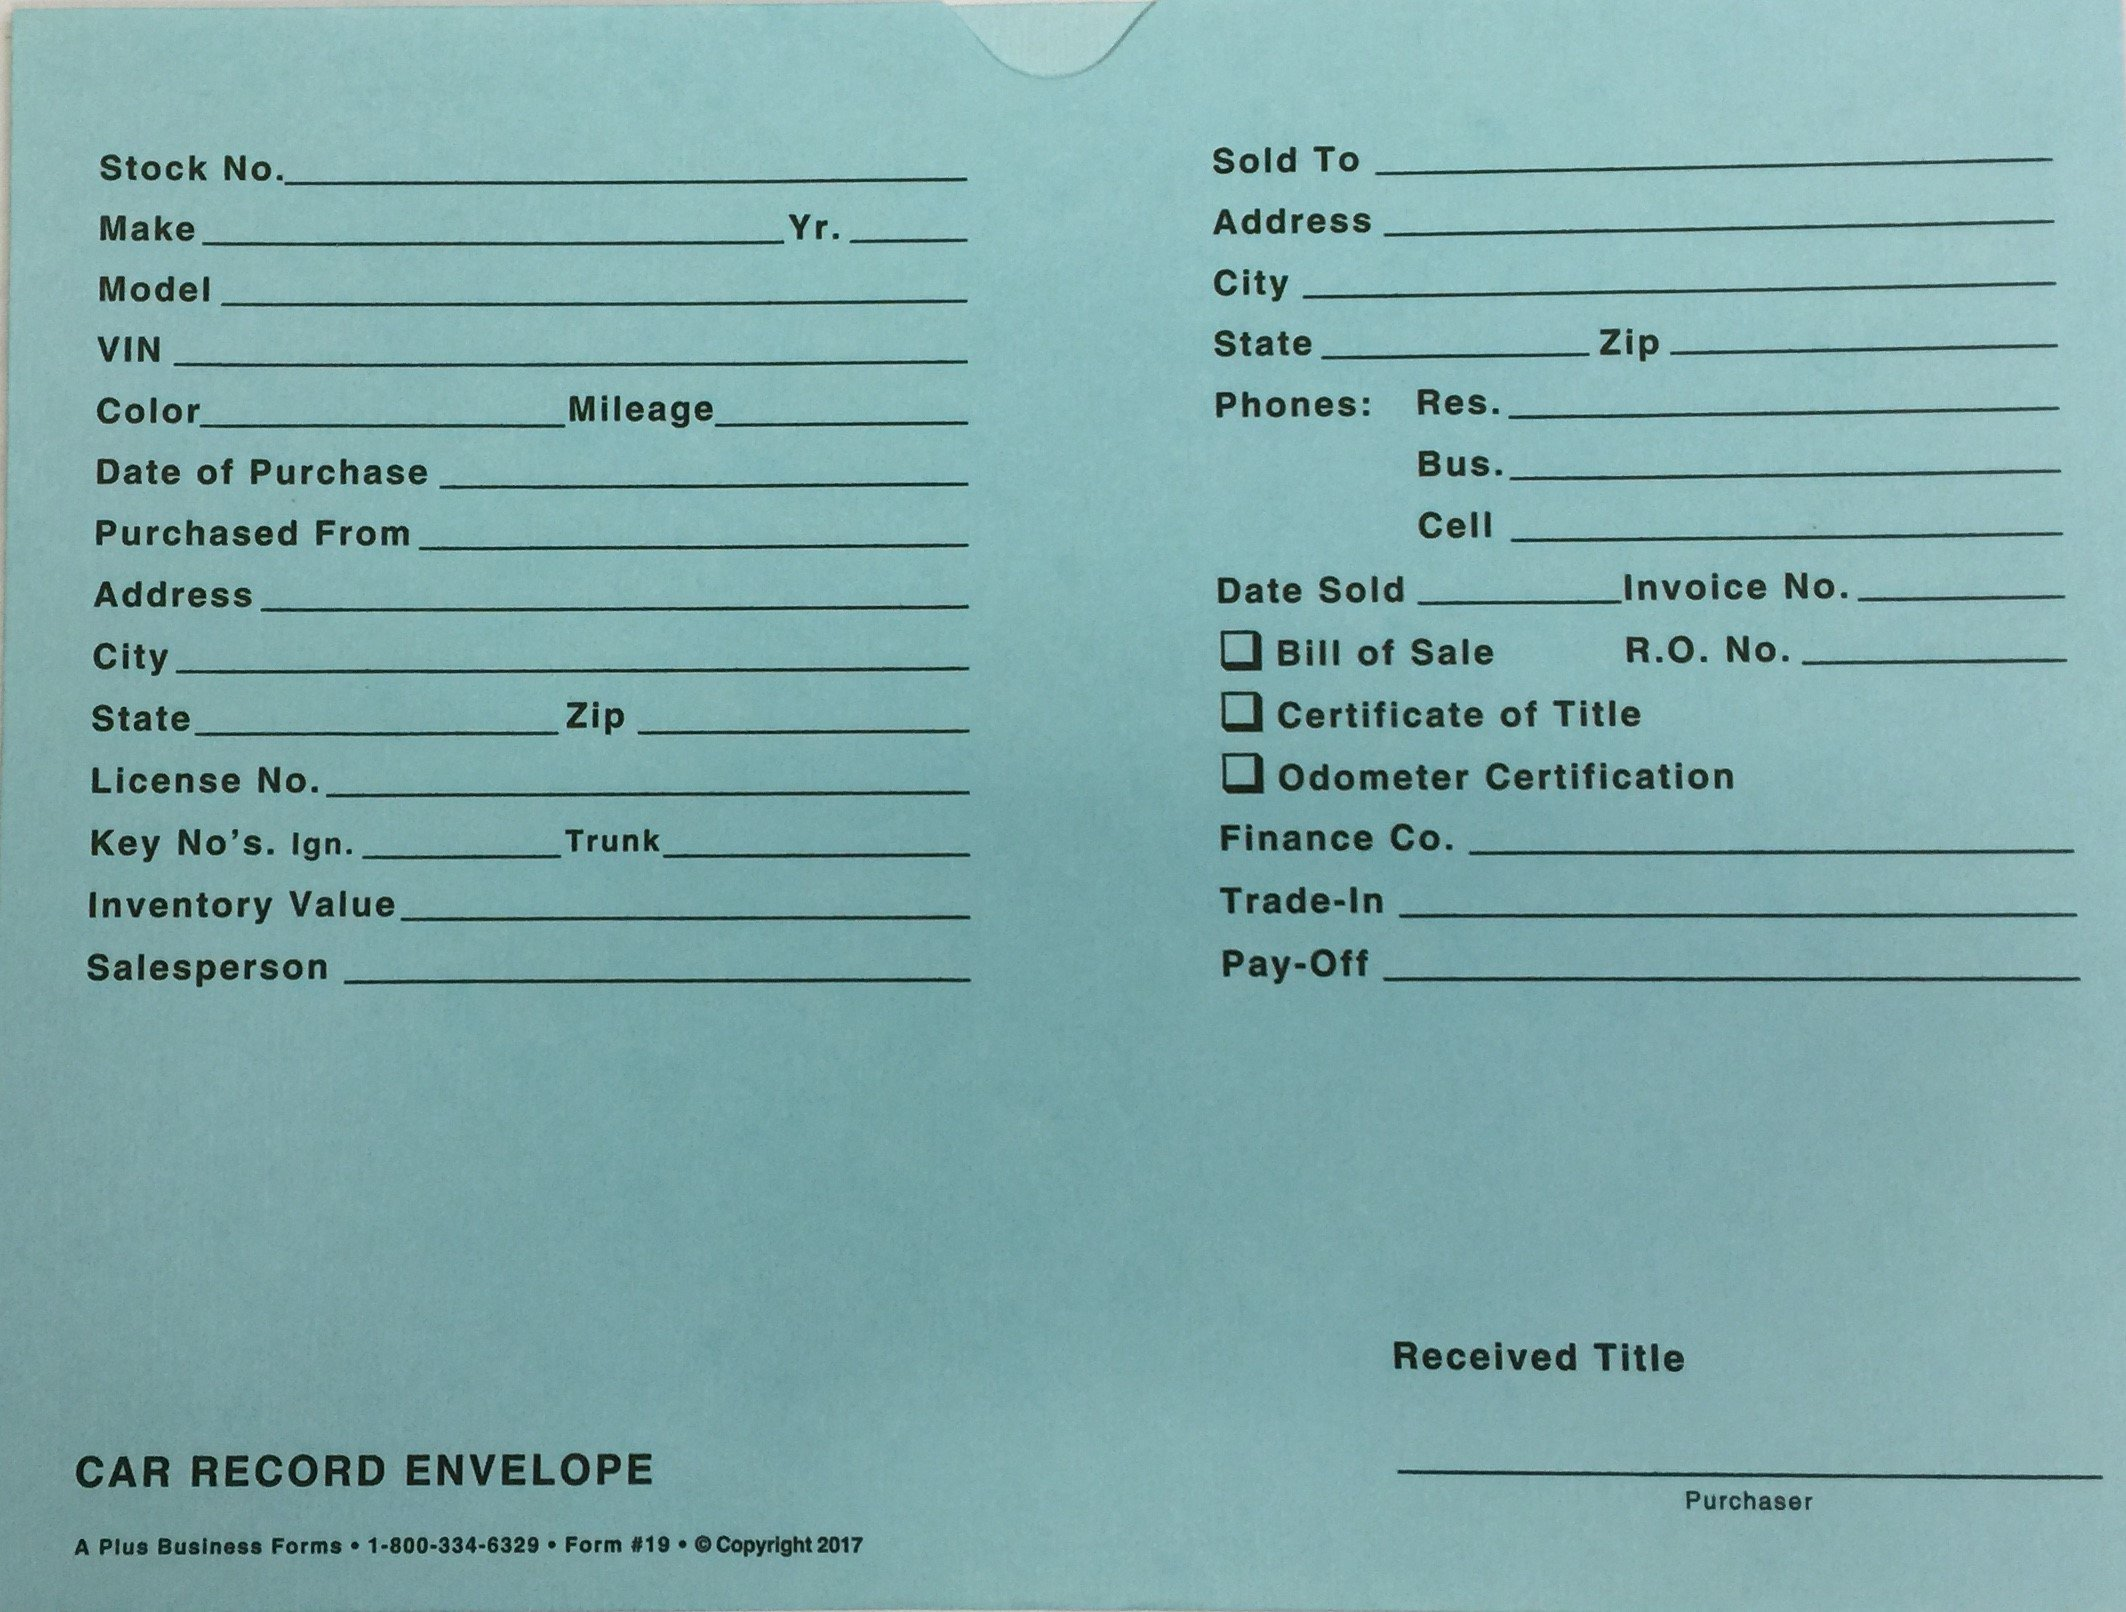 Car Record Envelope #19 Vehicle Deal Jackets by A+, 100 Quantity (Blue) (P8T)